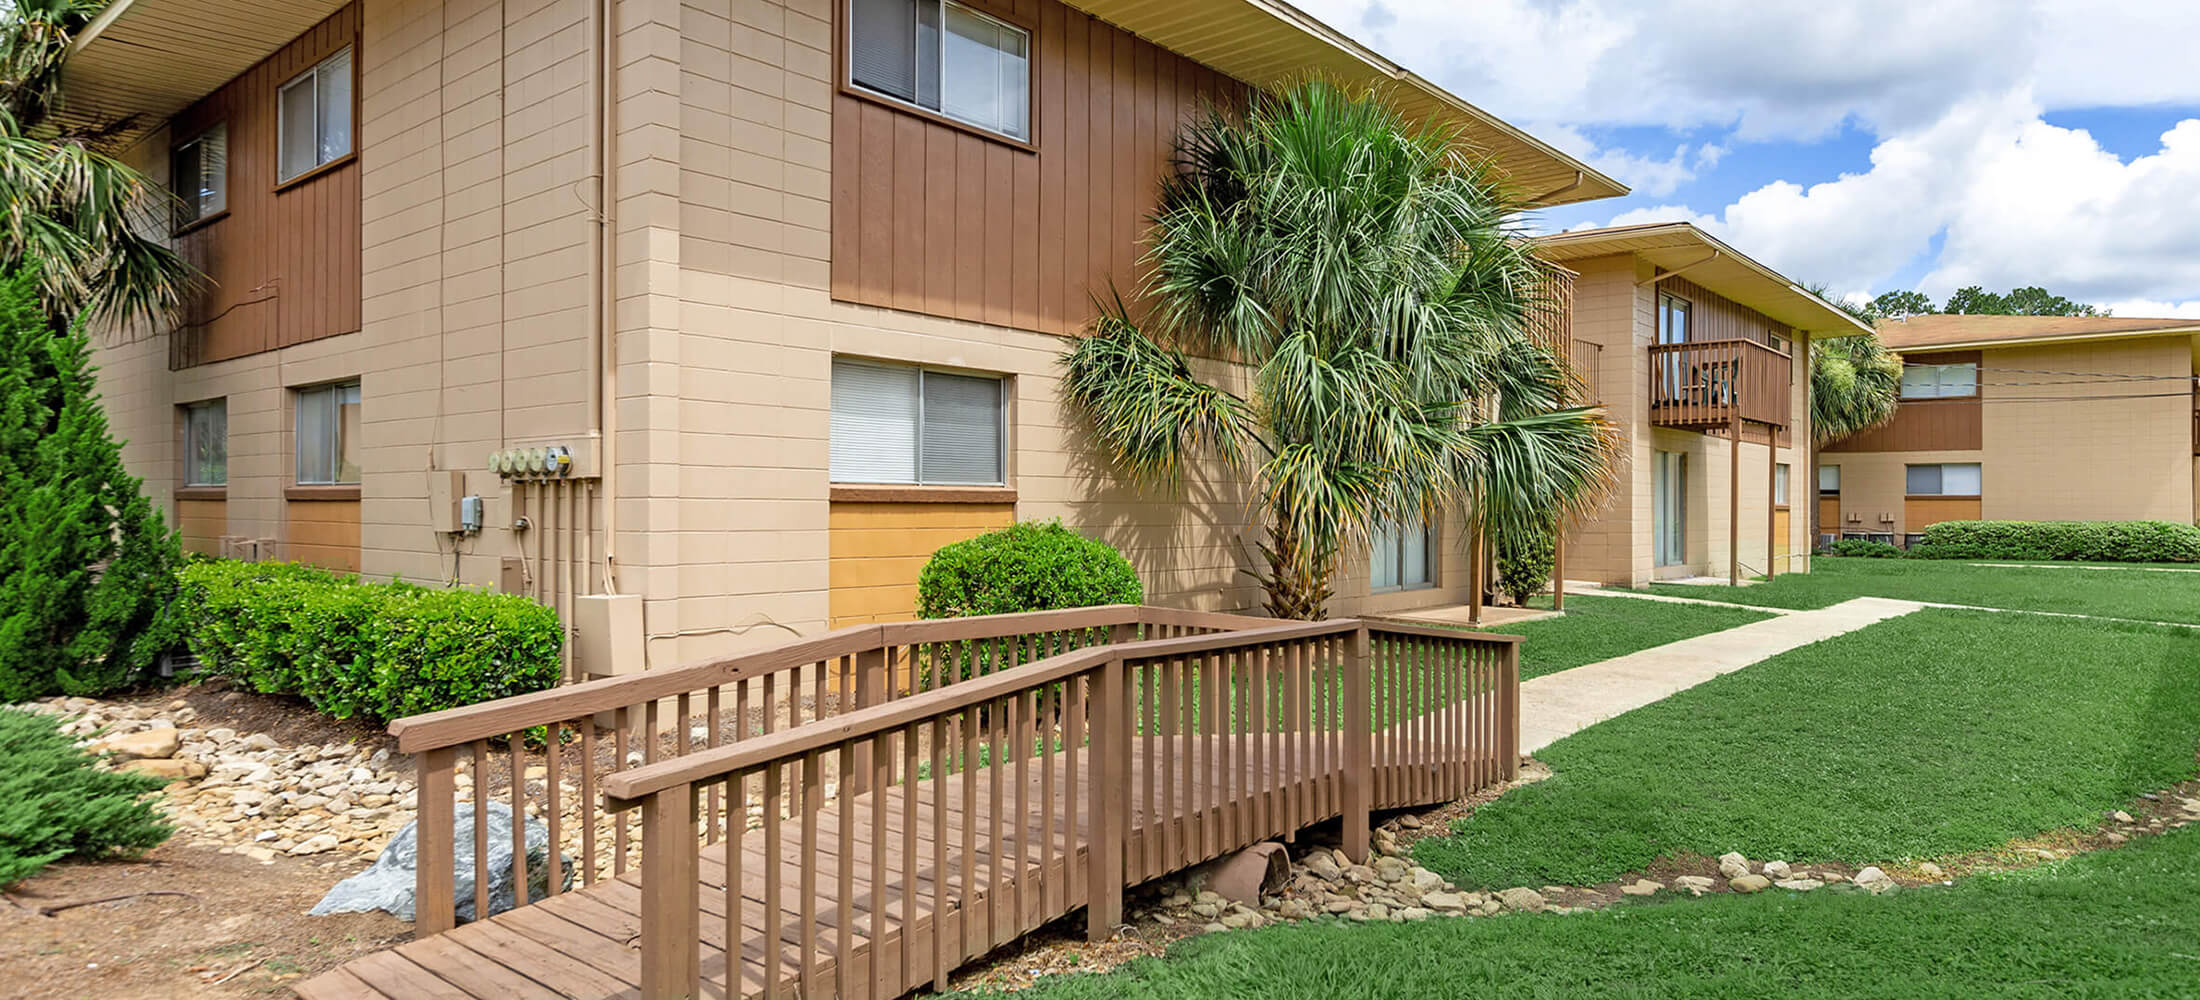 Sabal Court Apartments Apartments In Tallahassee Fl